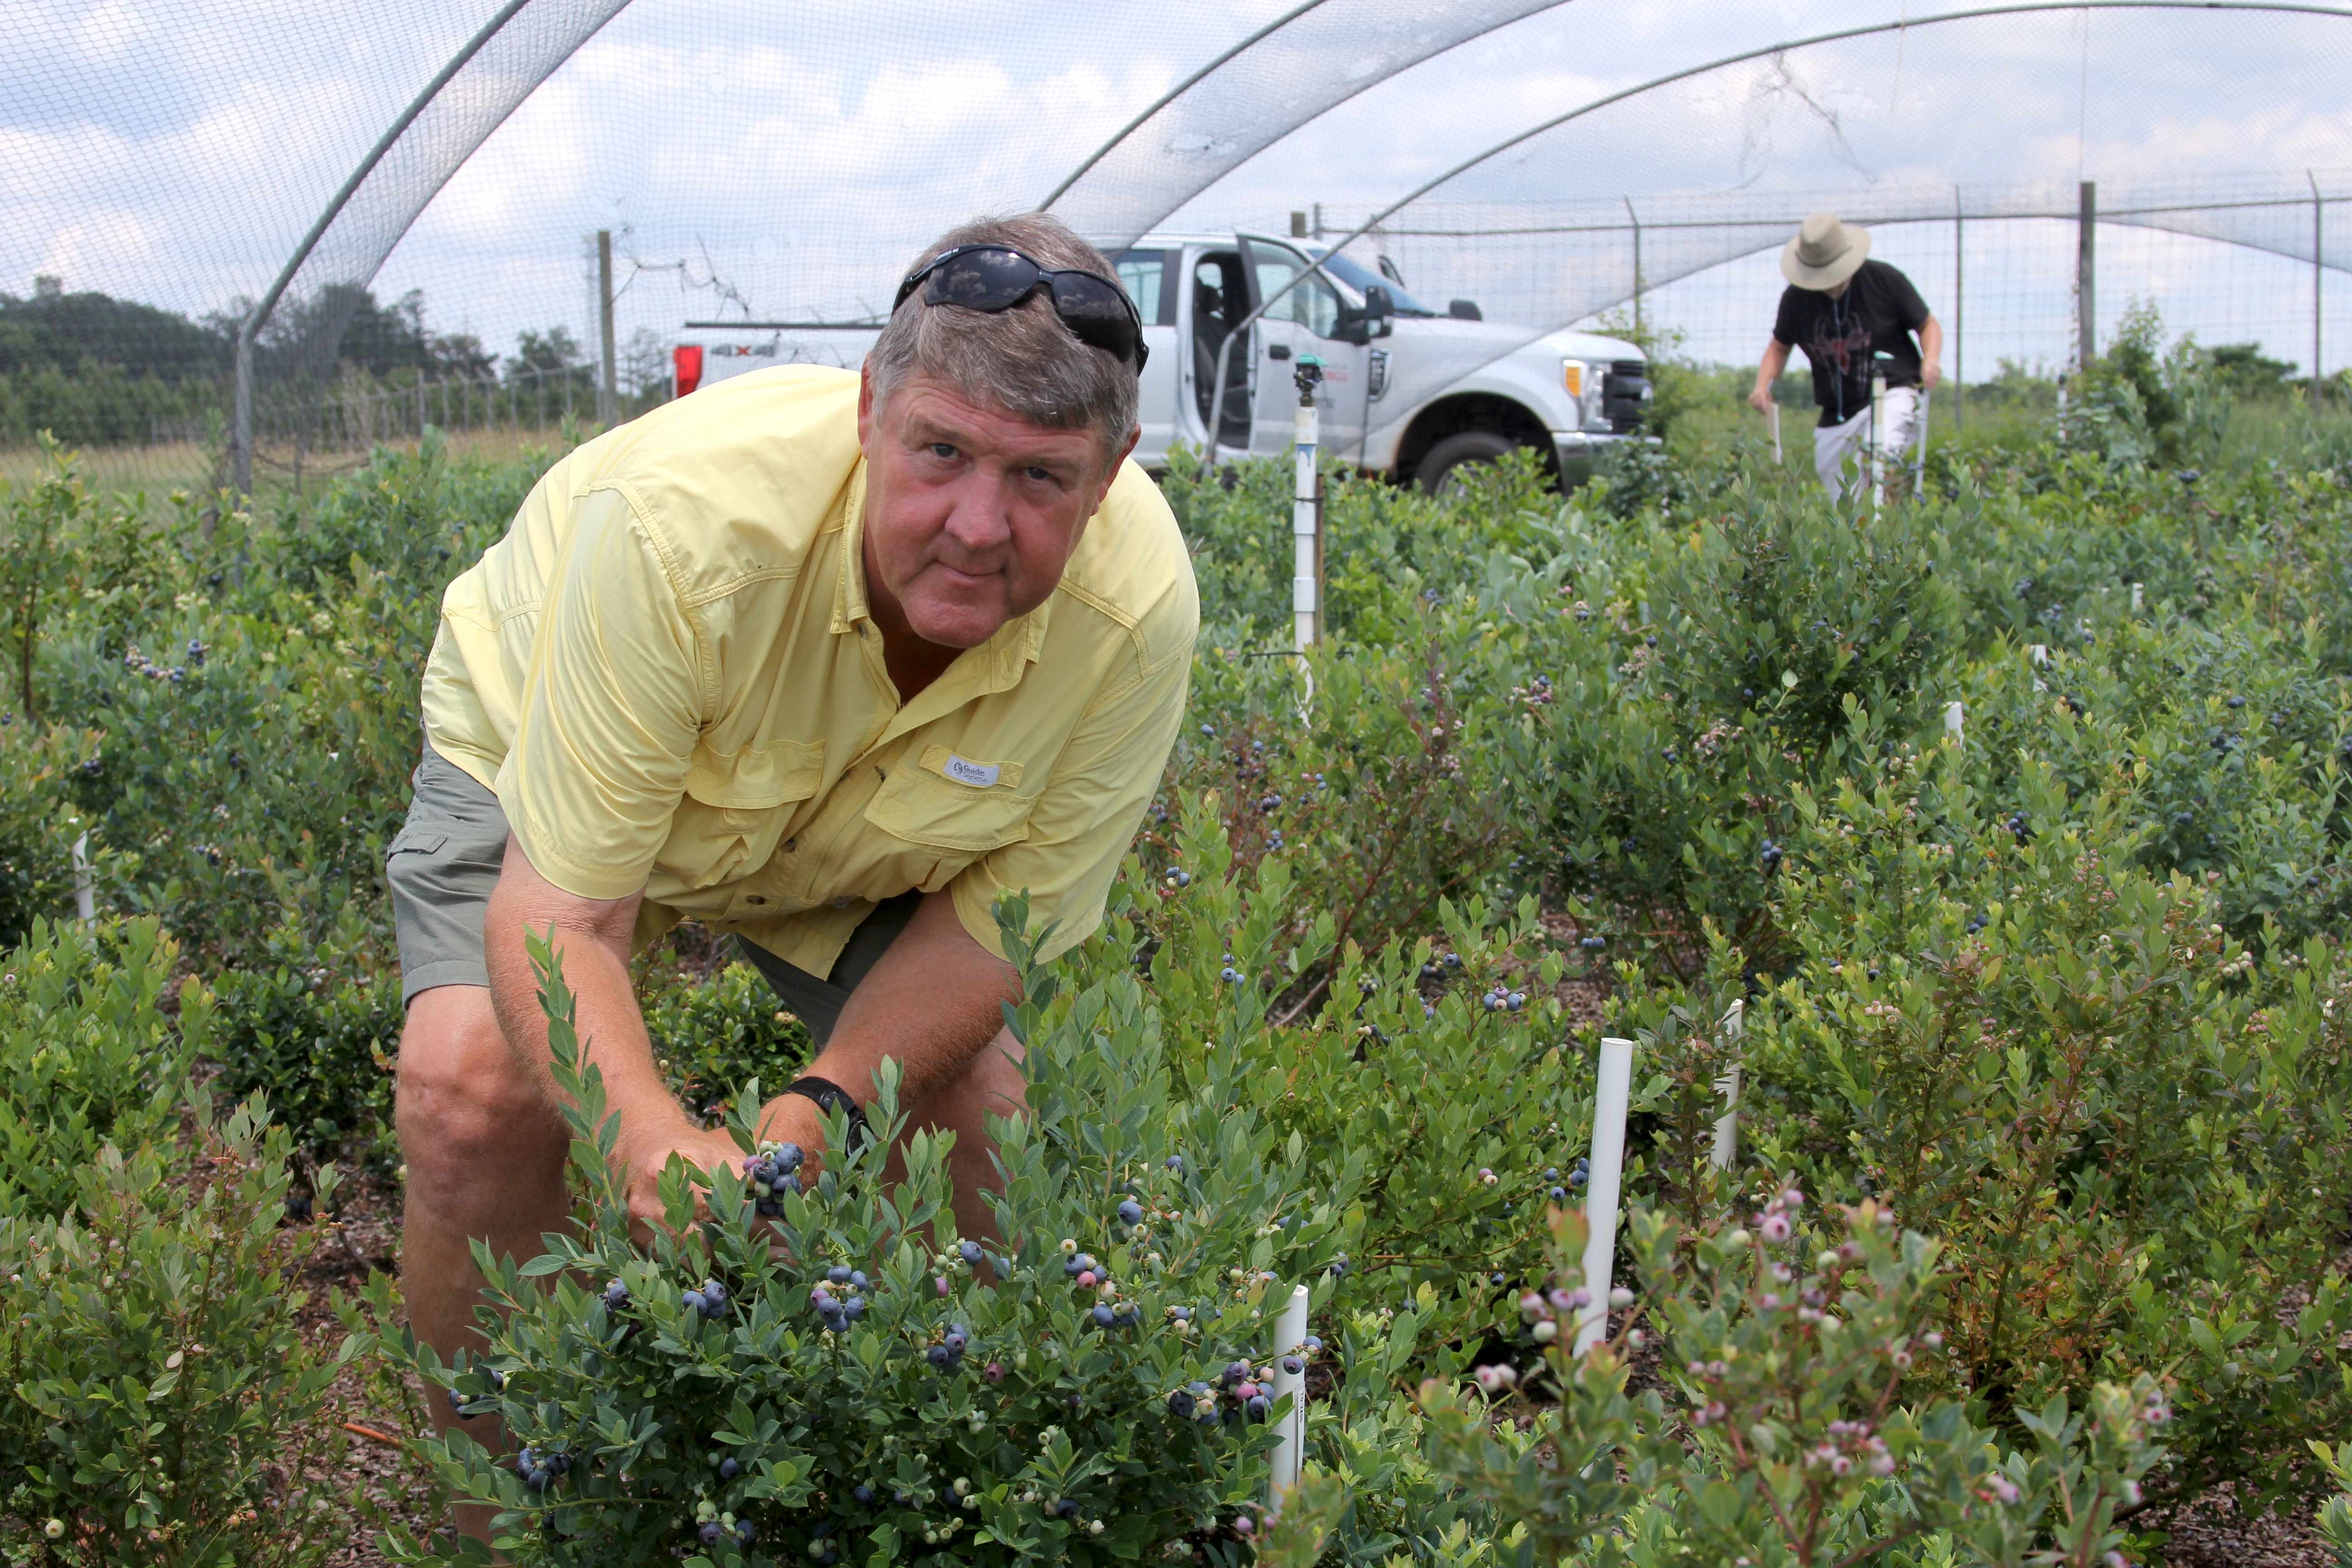 On the campus in Griffin, Georgia, UGA blueberry researcher Scott NeSmith typically breeds new varieties to meet growers' needs. Now, he's released some ornamental blueberries that are perfect for growing in home landscapes and will help home gardeners grow their own fresh fruit.